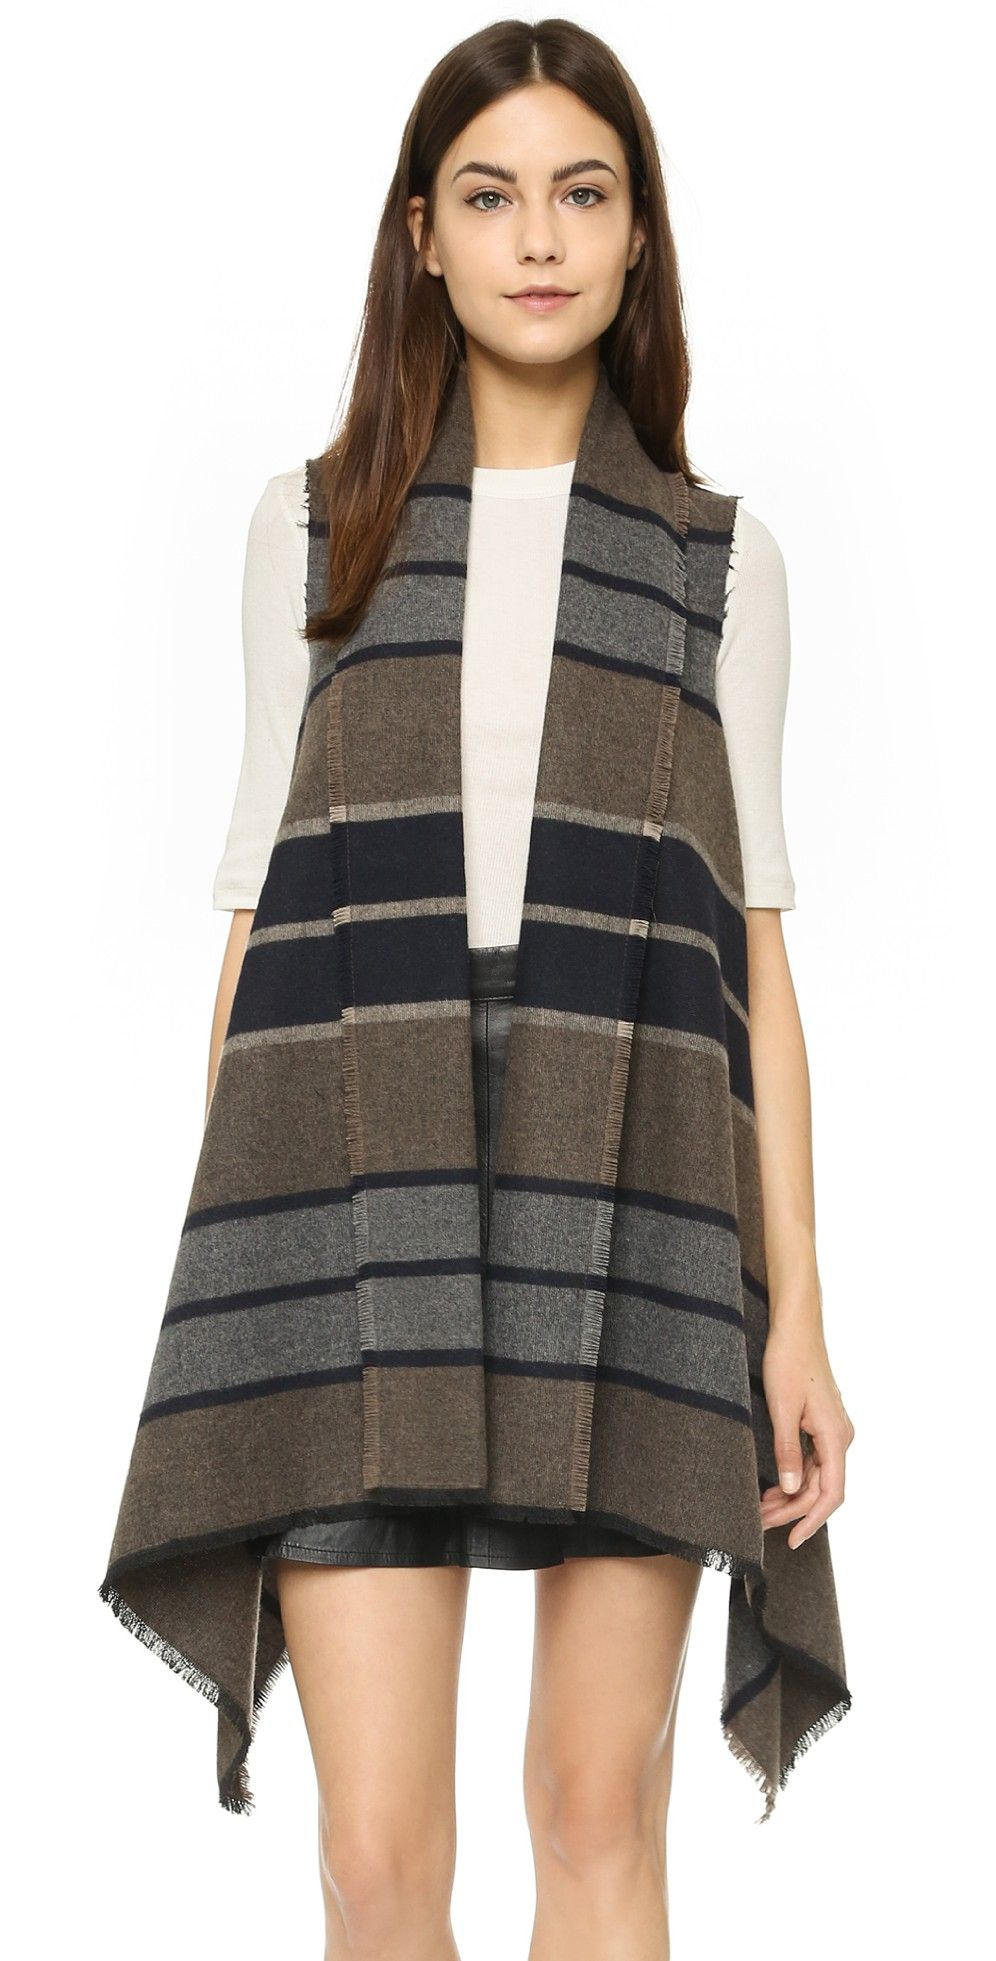 Duncan Wool Blanket Vest | Wool blanket, Bb and Tunics